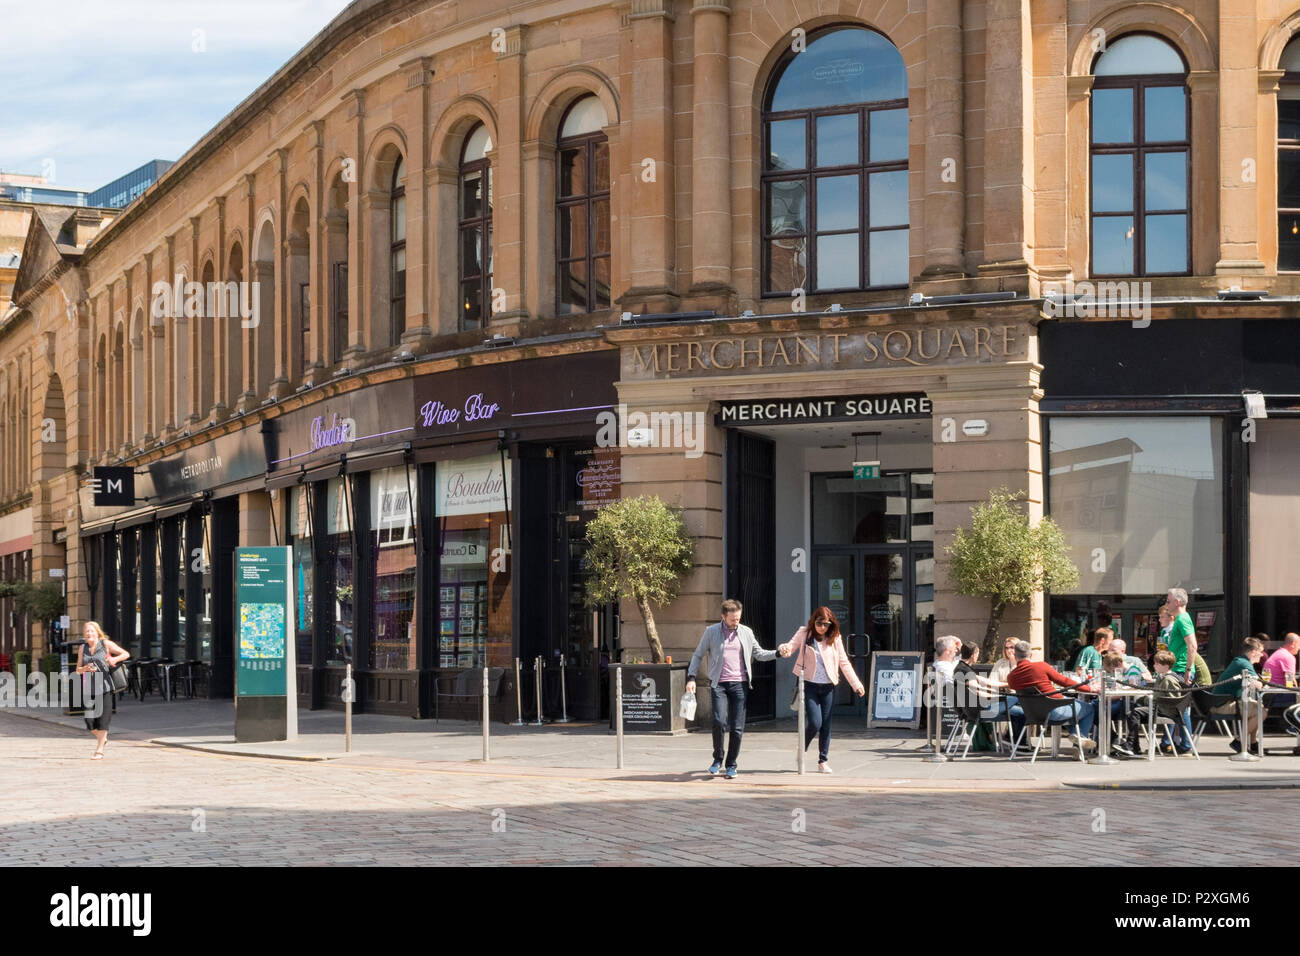 Merchant Square, a hub of independent bars and restaurants in the Merchant City, Glasgow, Scotland, UK - Stock Image